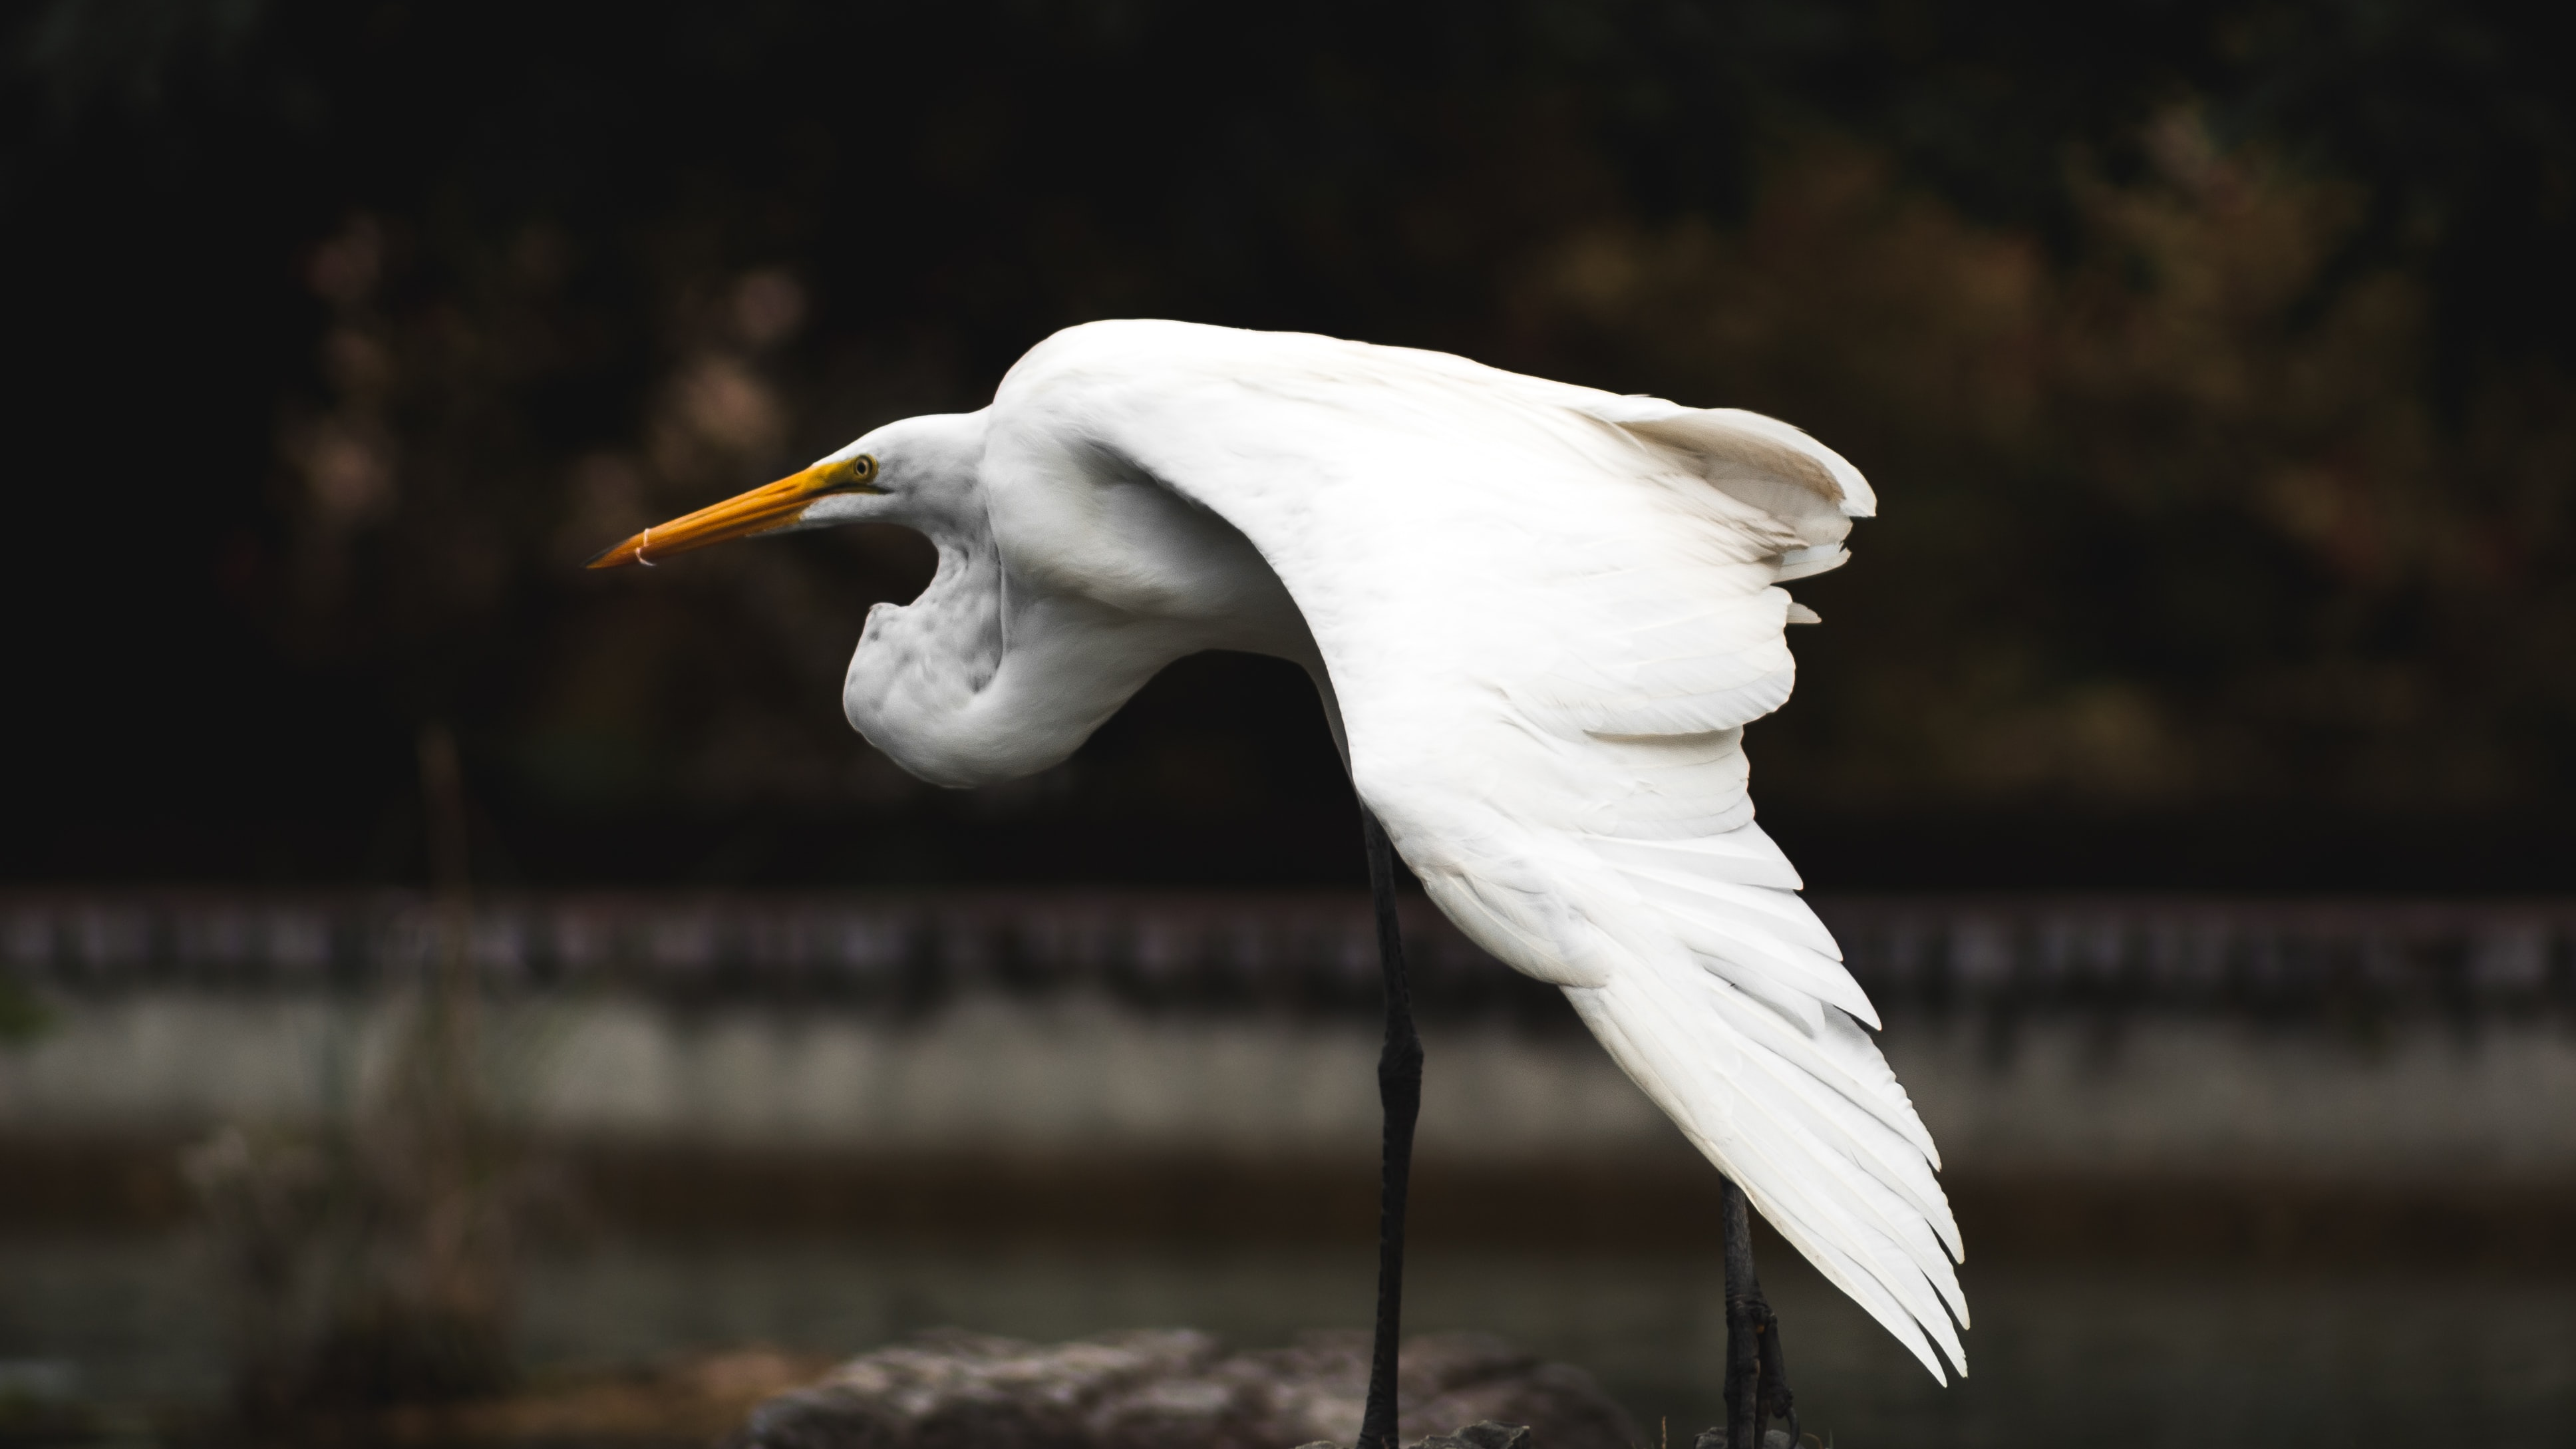 A white bird with a yellow beak and tall skinny legs